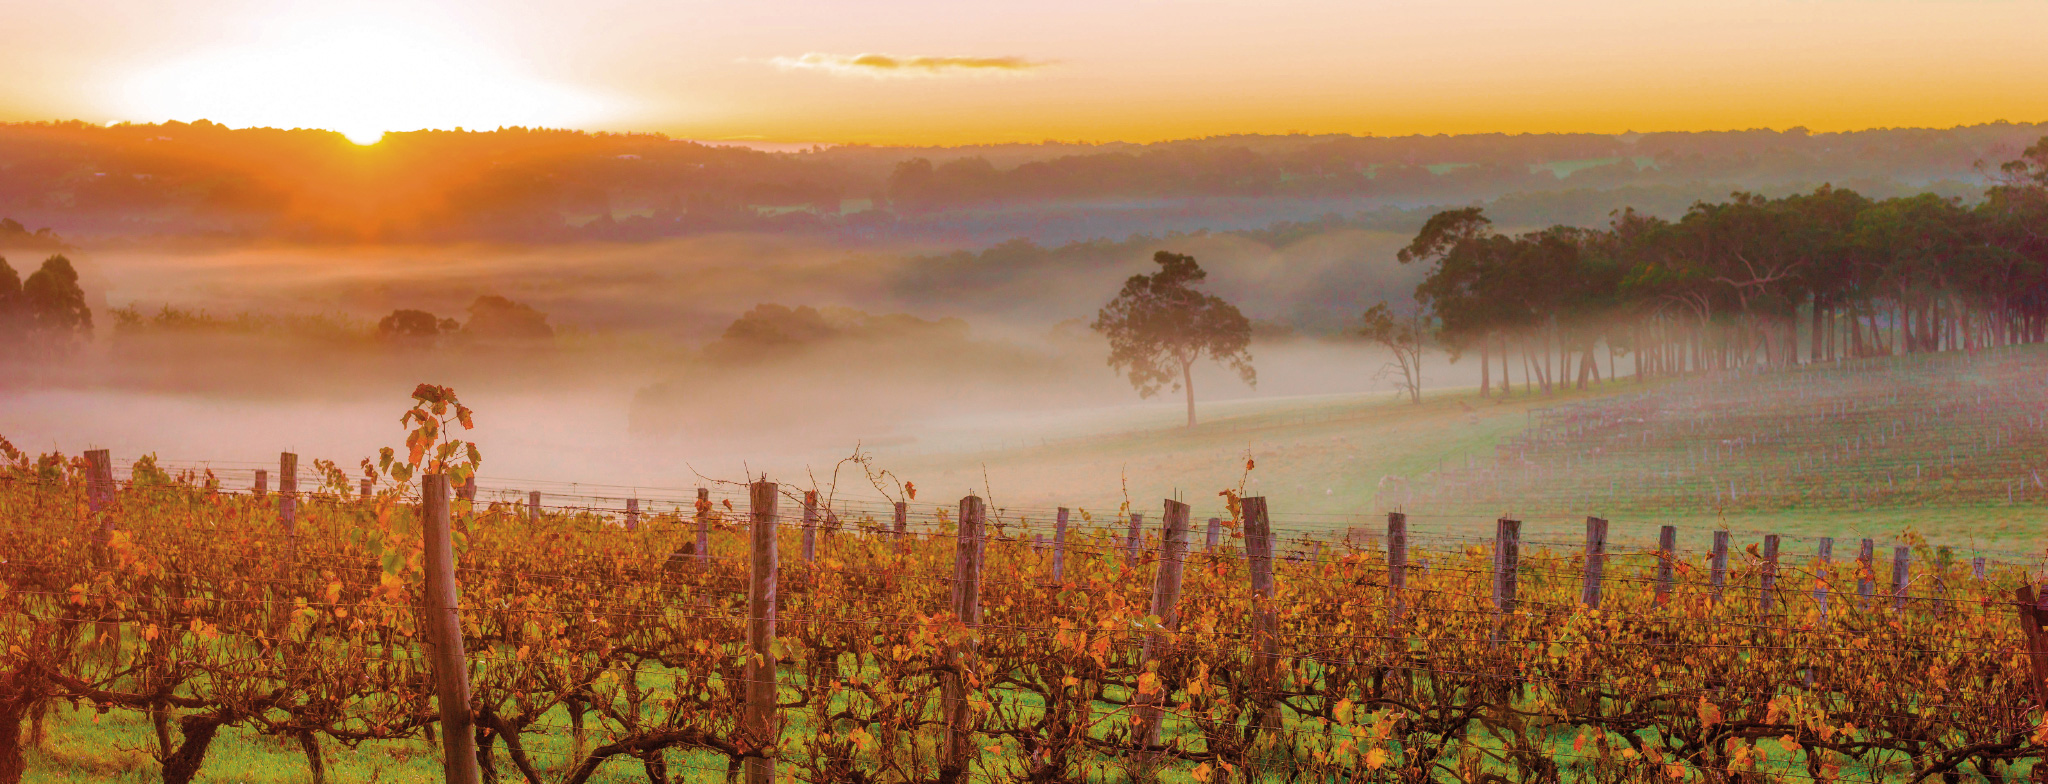 Margaret River Vineyards in Fog